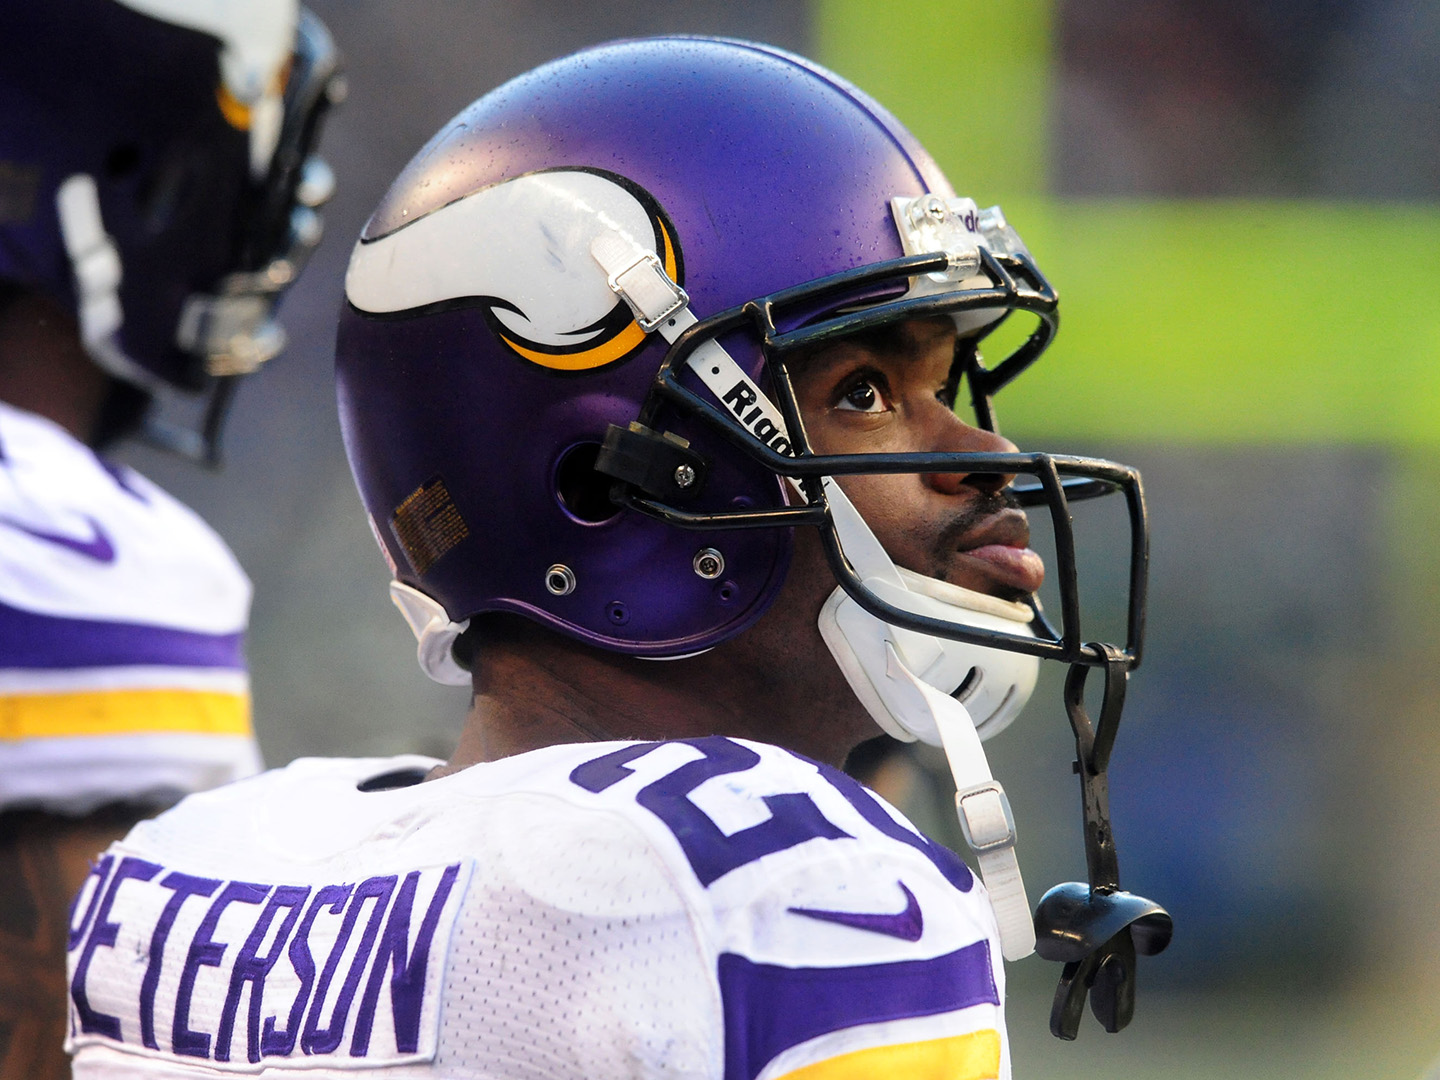 Vikings deactivate Adrian Peterson as sponsors cut ties